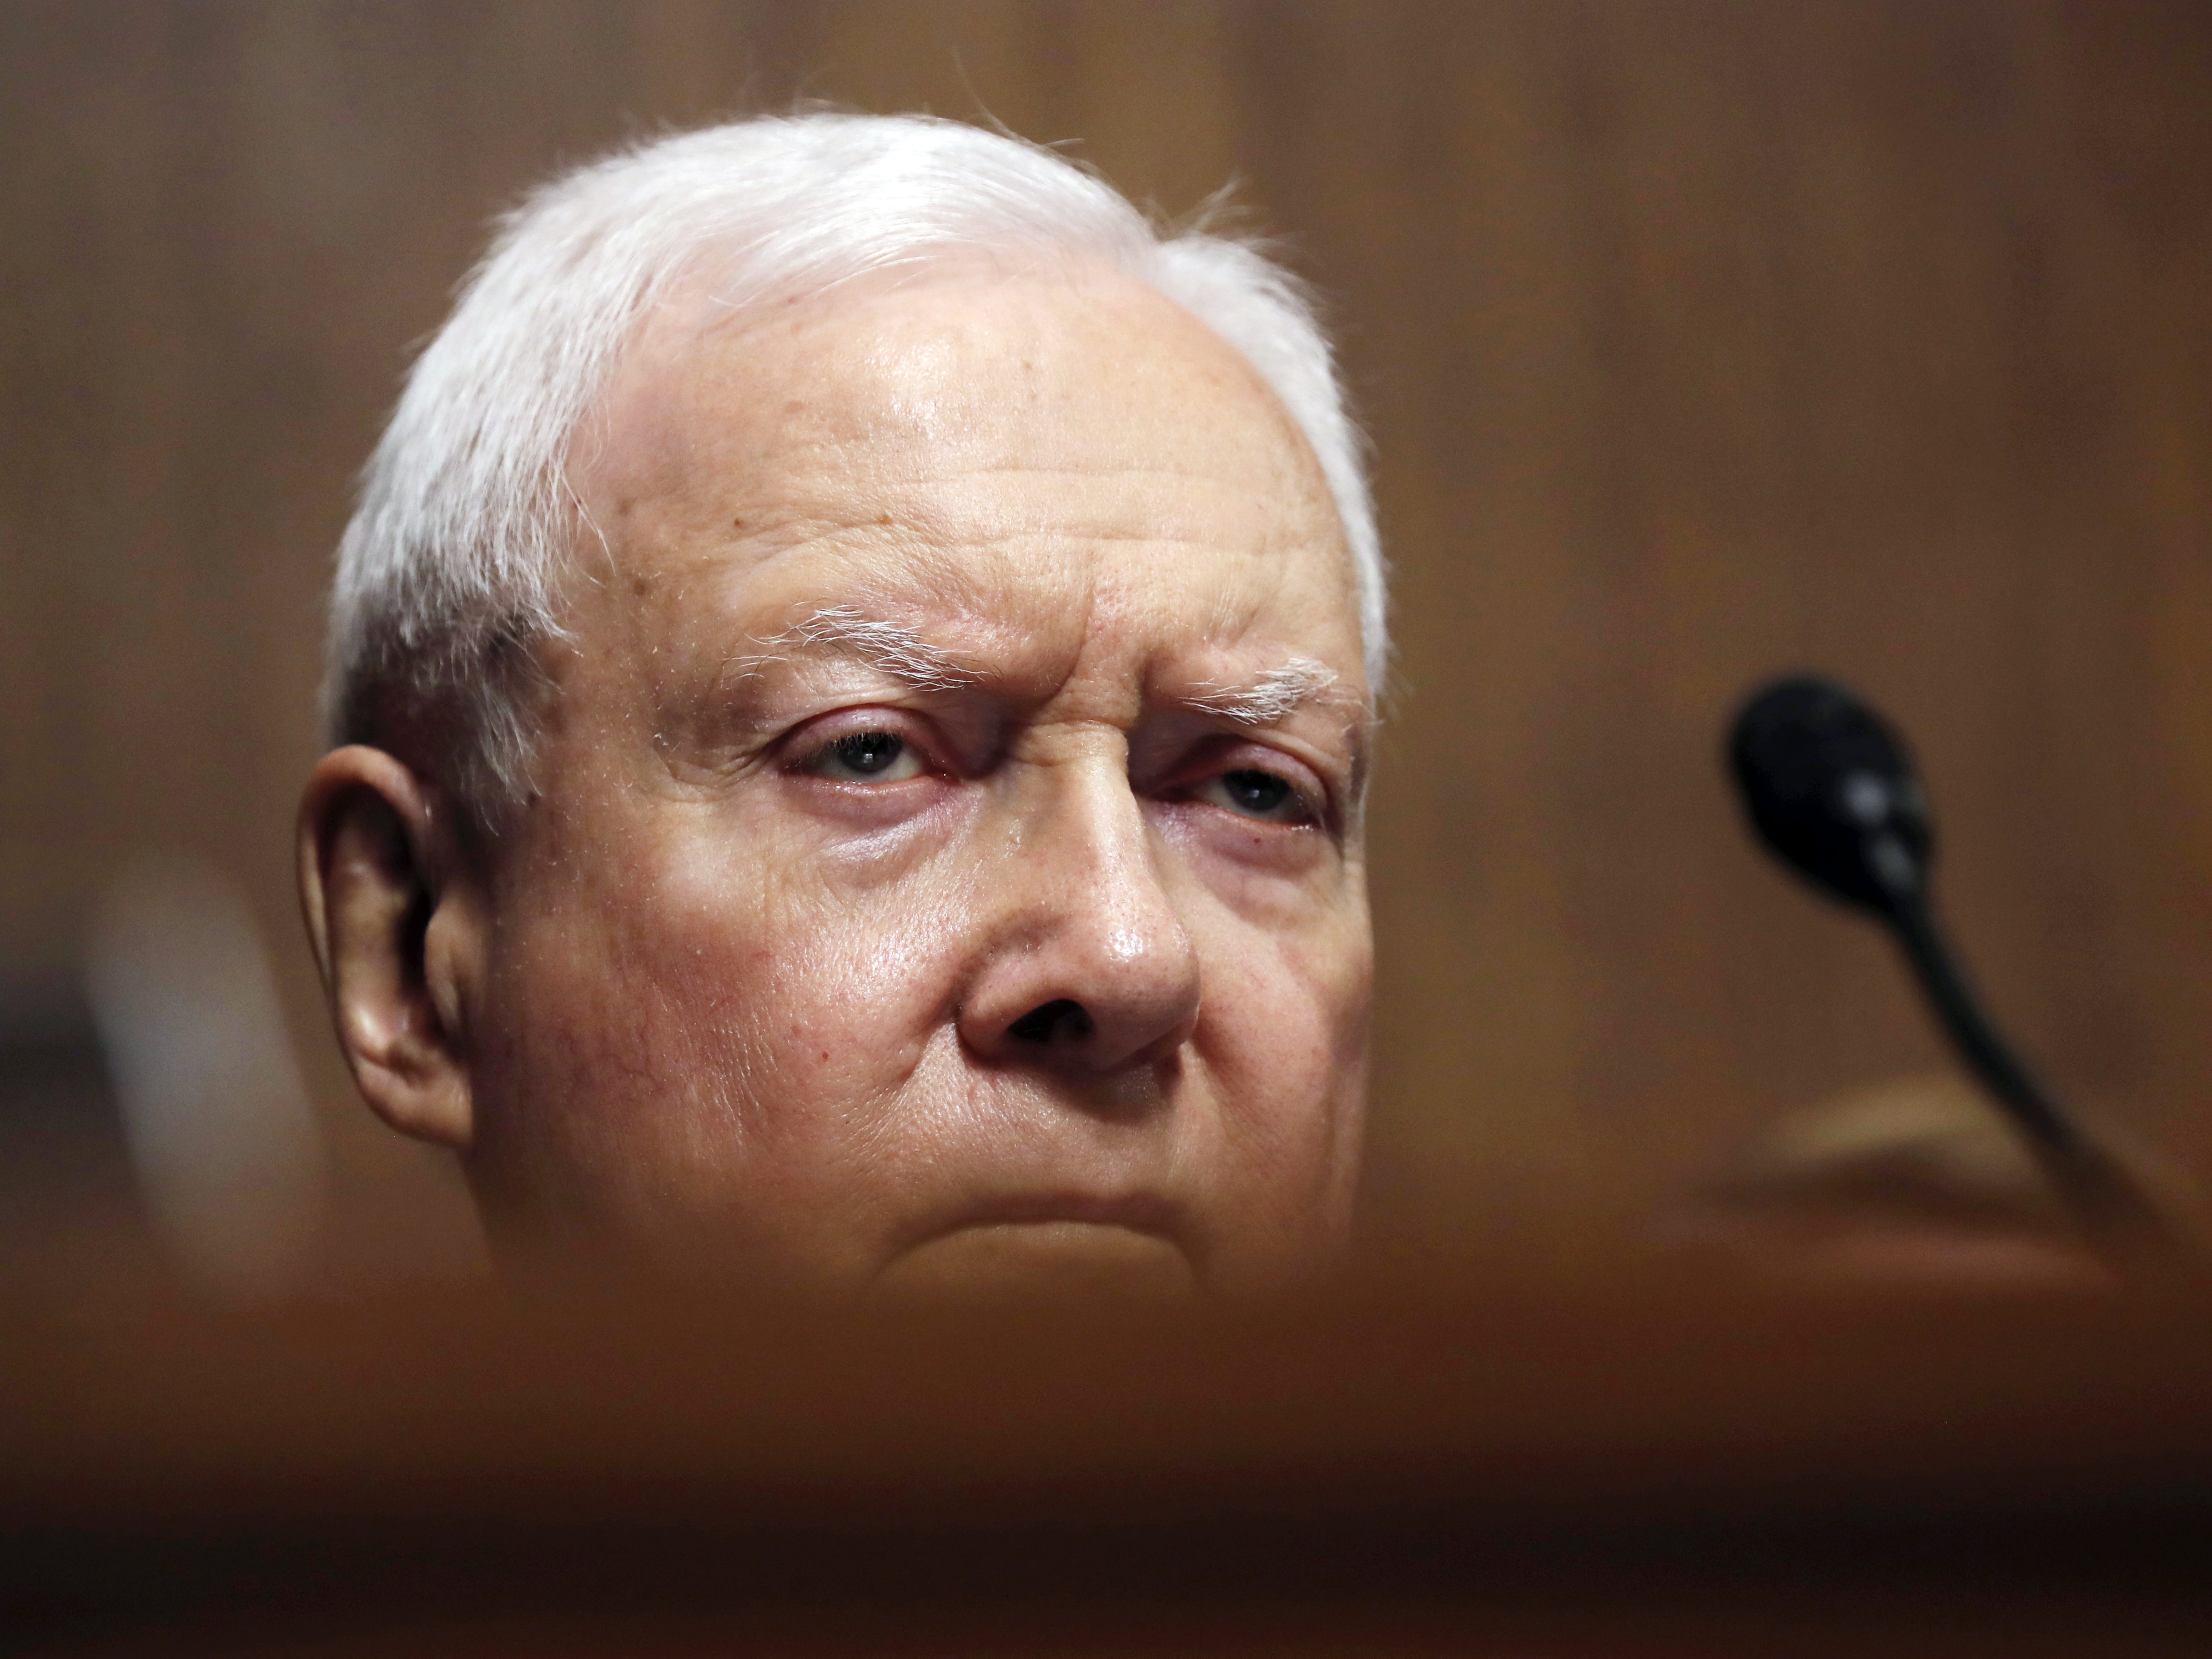 WASHINGTON, DC - SEPTEMBER 27: U.S. Senator Orrin Hatch (R-UT) listens during a Senate Judiciary Committee confirmation hearing with professor Christine Blasey Ford, who has accused U.S. Supreme Court nominee Brett Kavanaugh of a sexual assault in 1982, on Capitol Hill September 27, 2018 in Washington, DC. A professor at Palo Alto University and a research psychologist at the Stanford University School of Medicine, Ford has accused Supreme Court nominee Judge Brett Kavanaugh of sexually assaulting her during a party in 1982 when they were high school students in suburban Maryland. (Photo by Jim Bourg-Pool/Getty Images) ORG XMIT: 775234142 ORIG FILE ID: 1041745042